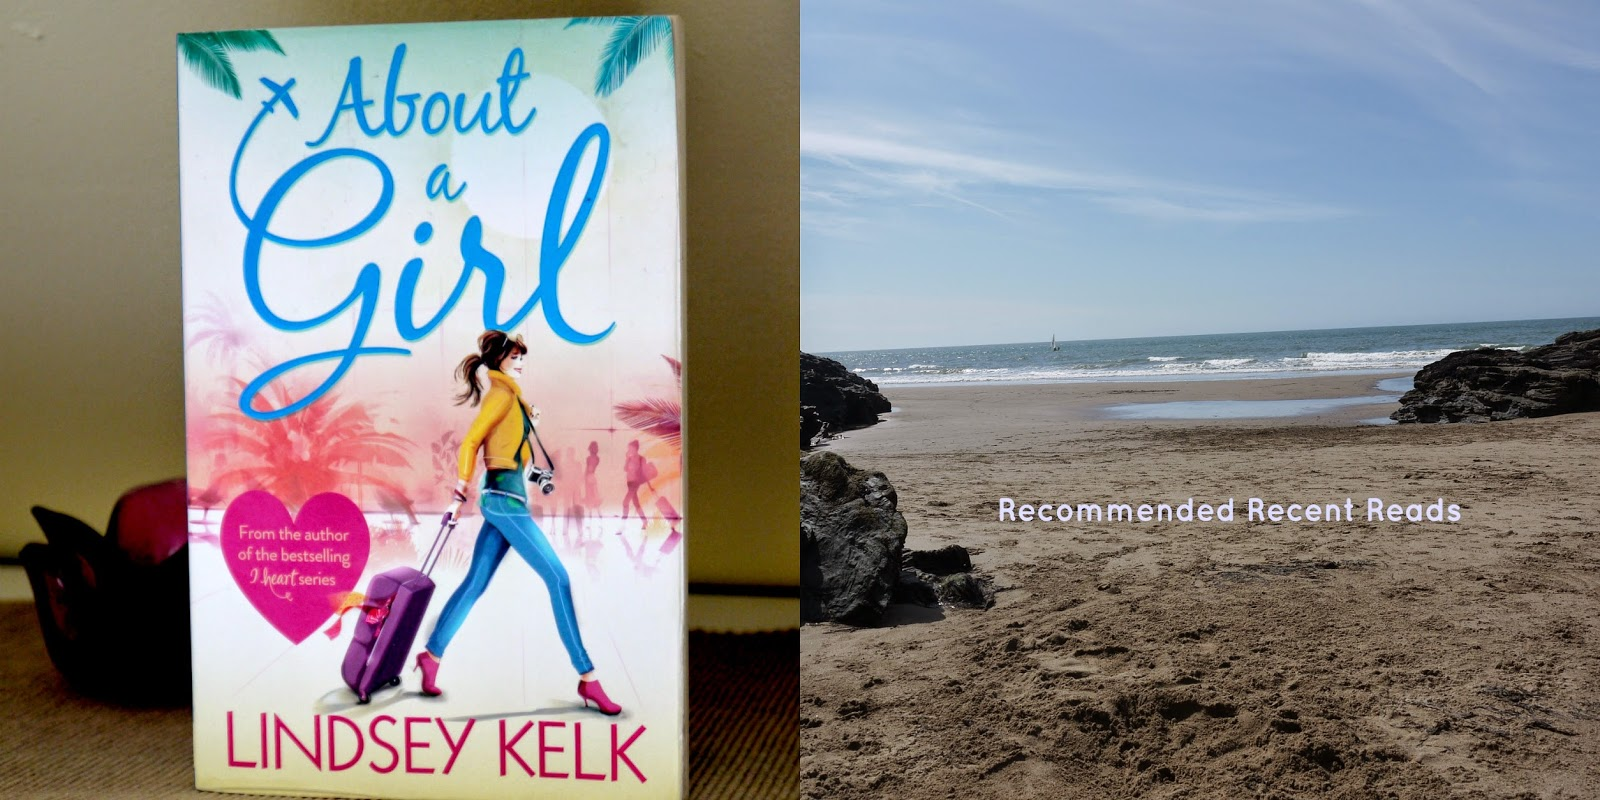 About a Girl by Lindsey Kelk (I heart series) book review